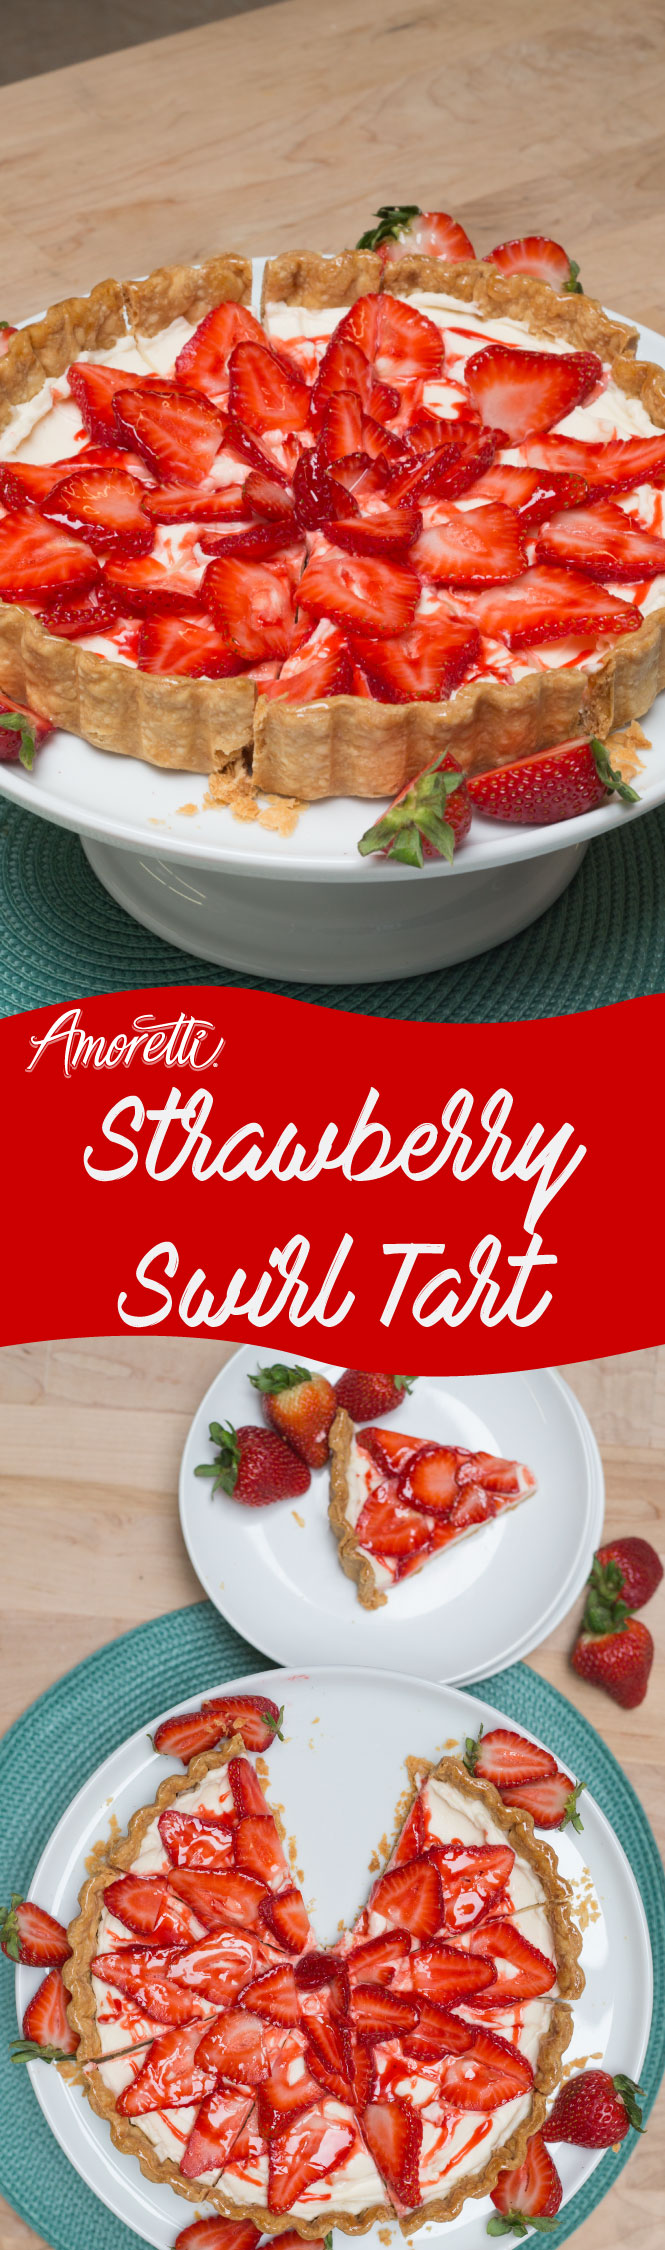 Impress your guests with this fancy Strawberry Swirl Tart!